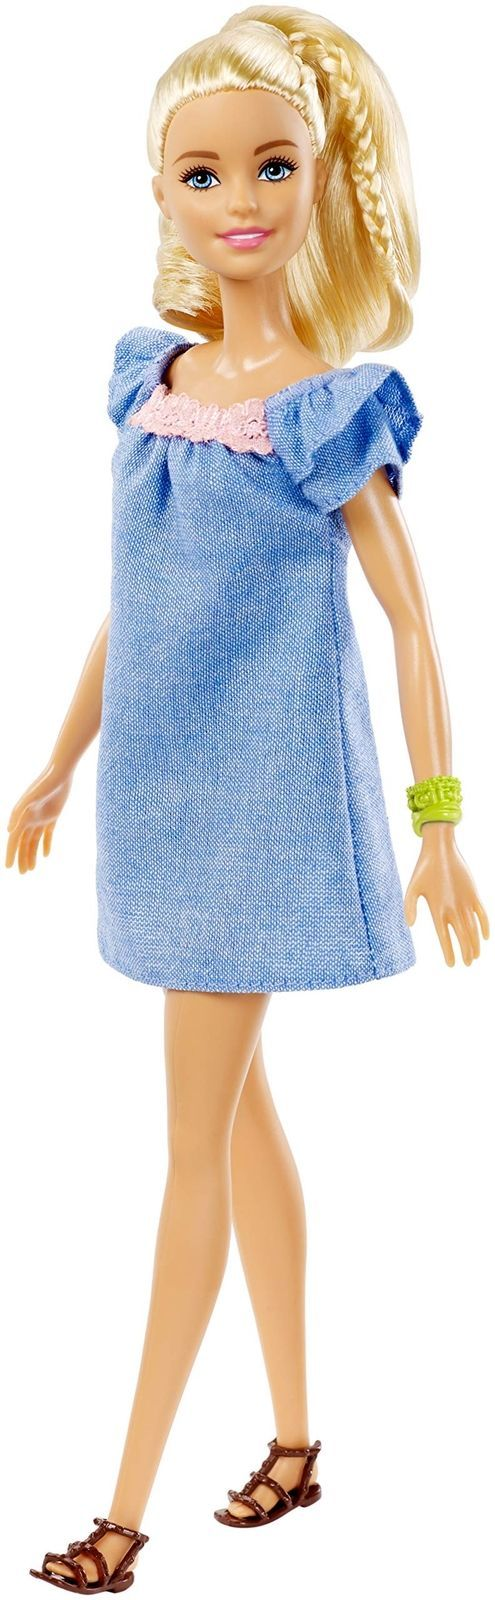 Barbie Fashionistas Doll 99 - TOYBOX Toy Shop